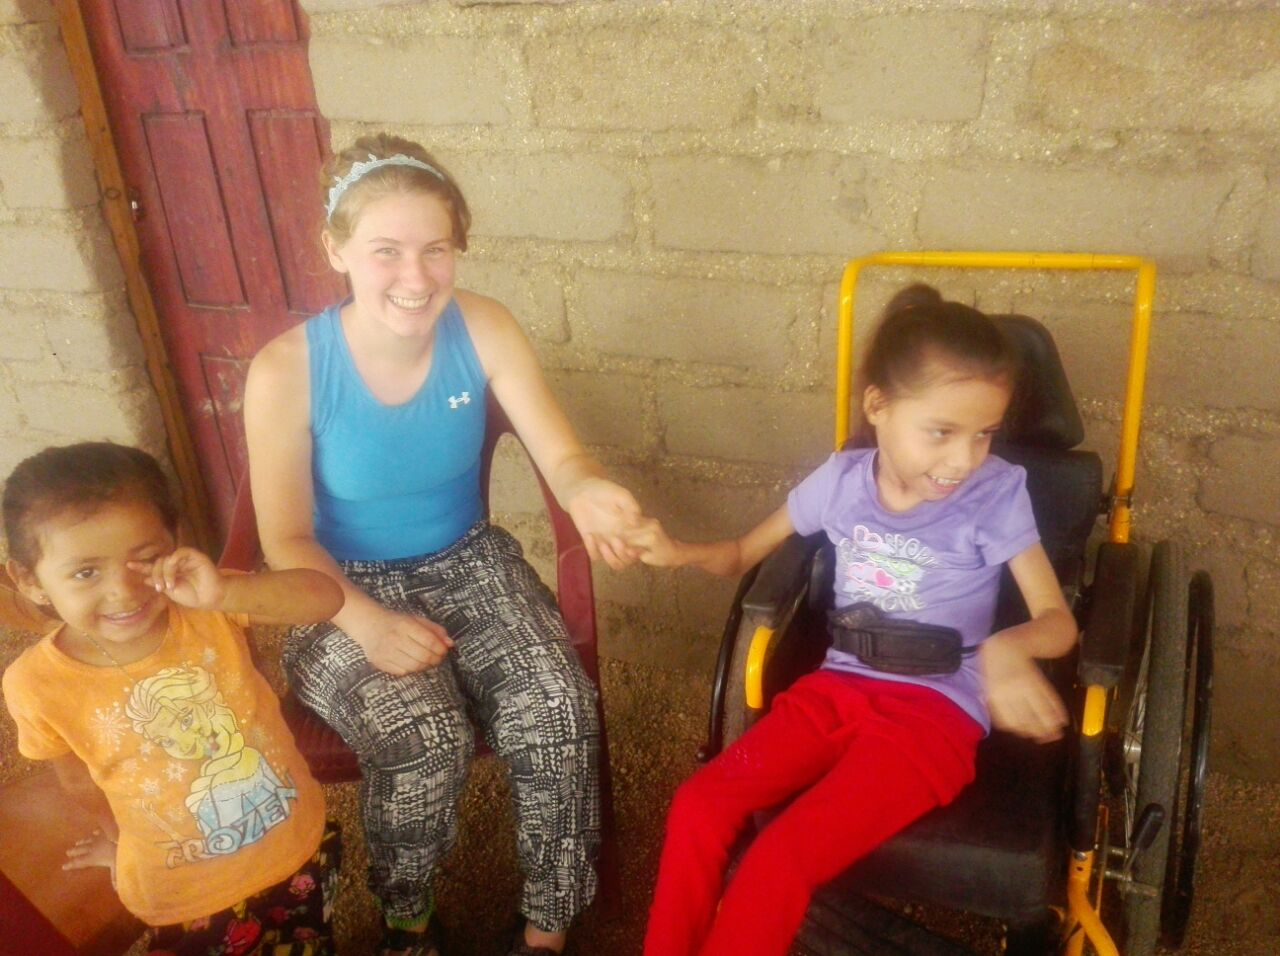 Naomi made a new friend with The Mercy Kids volunteer Serenity. A sweet moment.